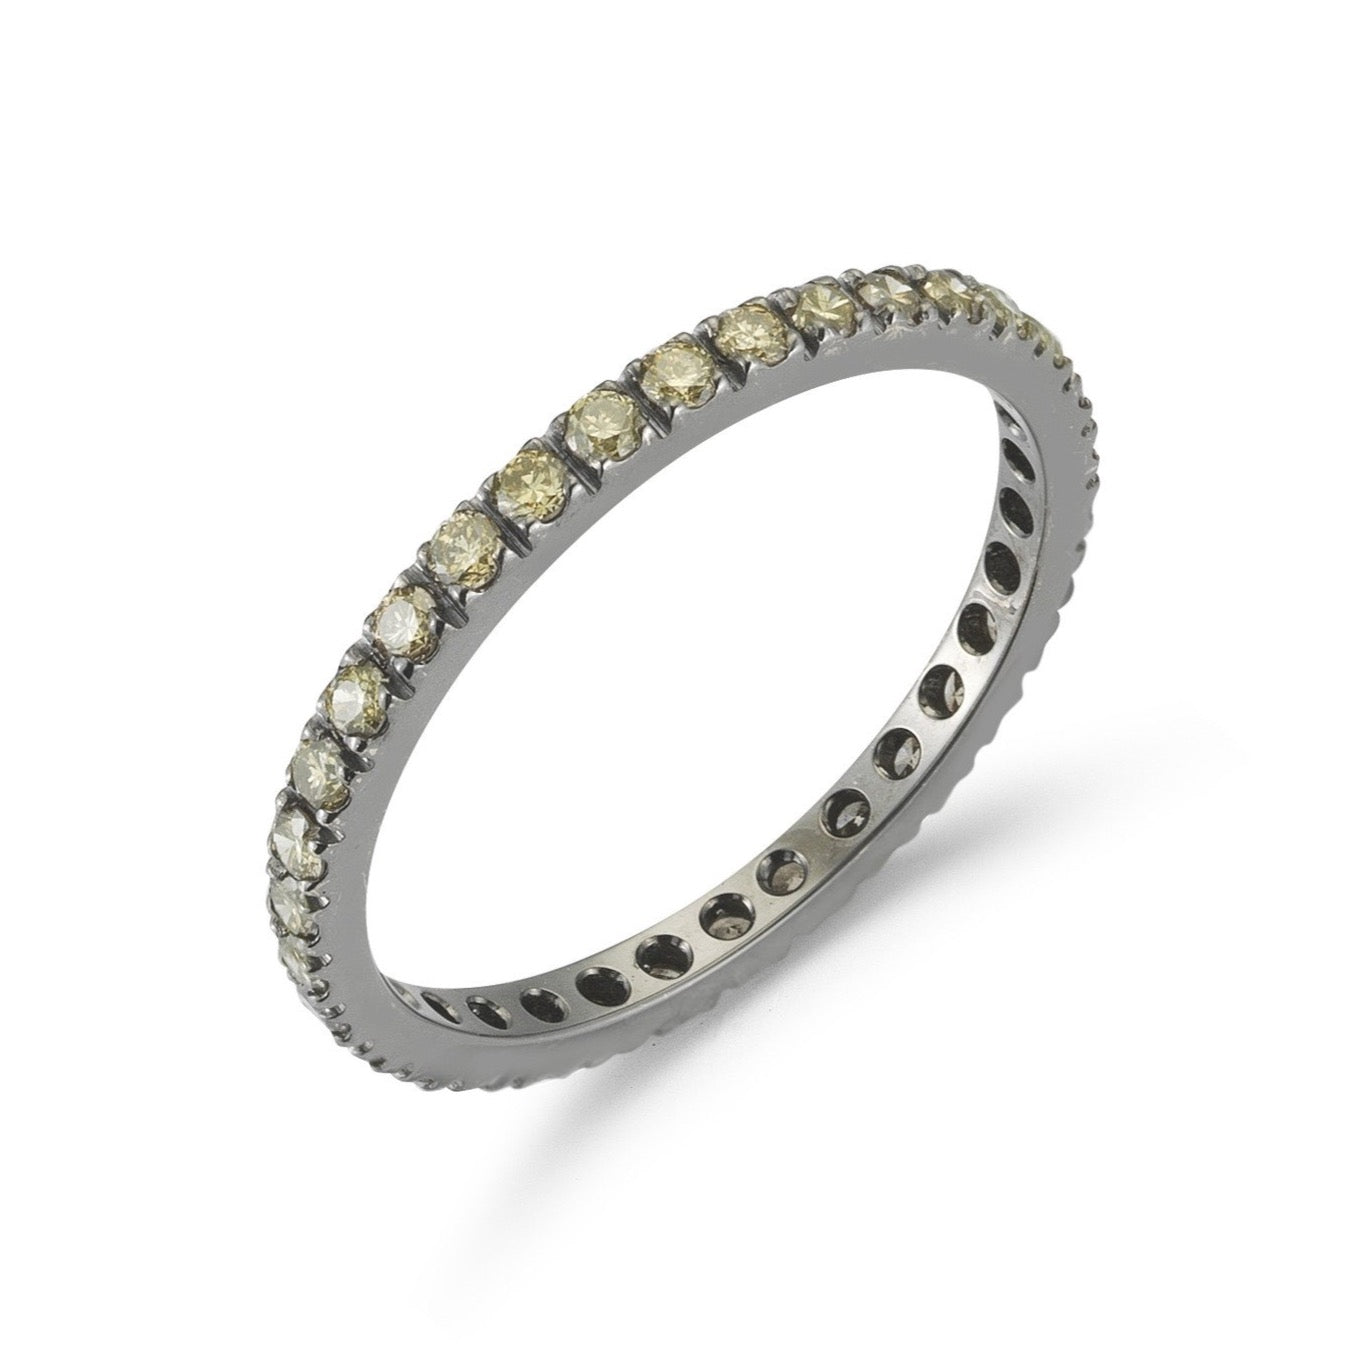 A-FURST-FRANCE-ETERNITY-BAND-RING-BROWN-DIAMONDS-BLACKENED-GOLD-A1290NY-1.5